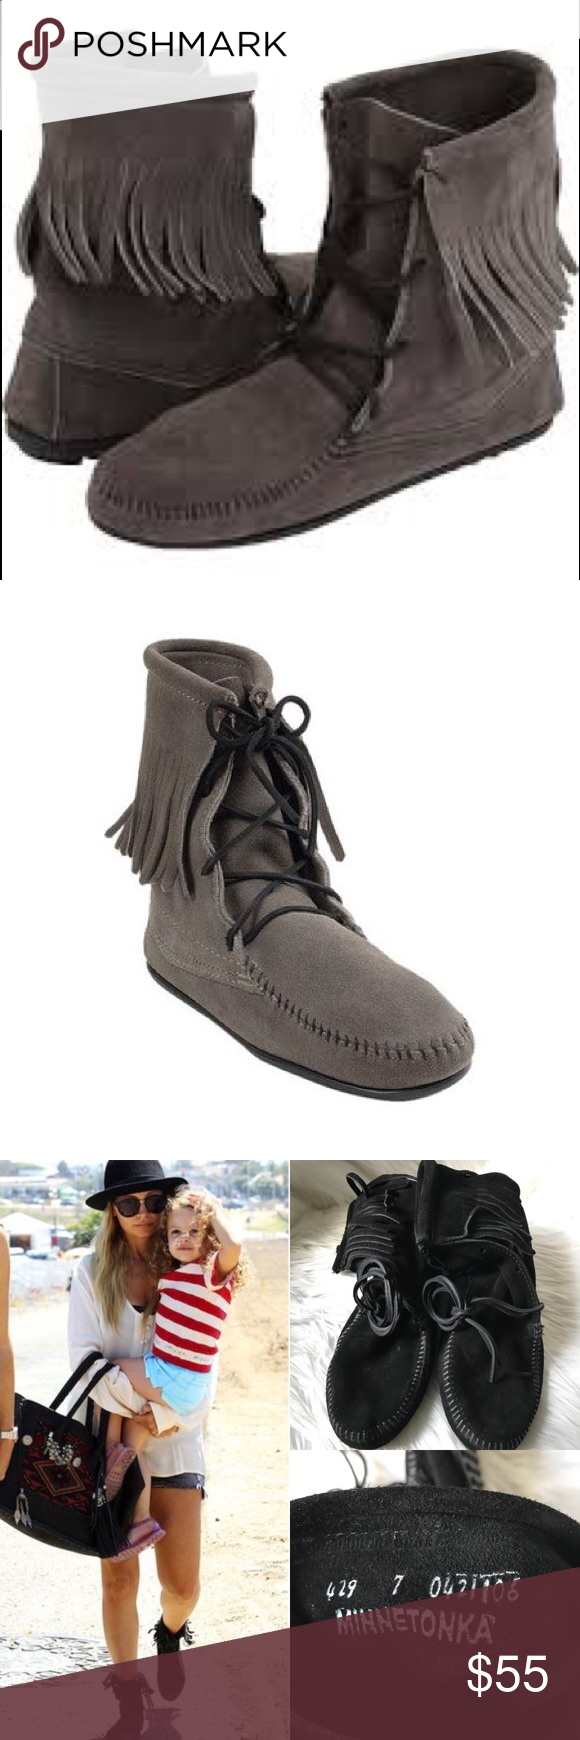 Minnetonka Tramper Ankle Hi Boot Lace Up Ankle Boots Leather And Lace Boots